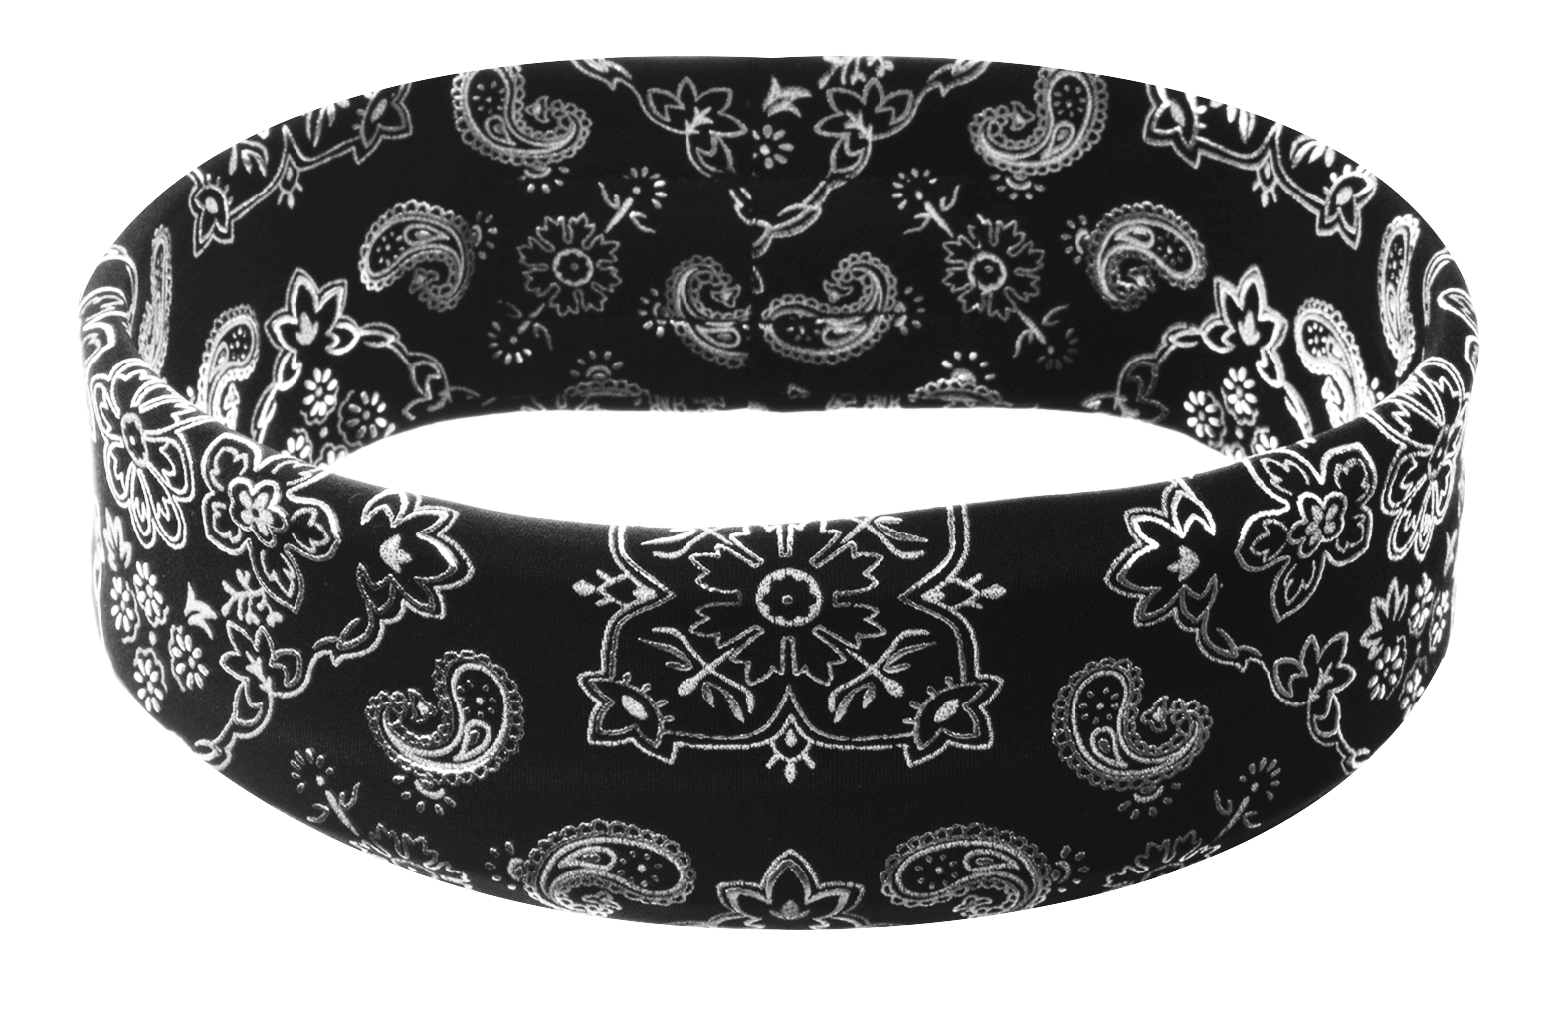 Black Bandana Headband 33242ea91e7